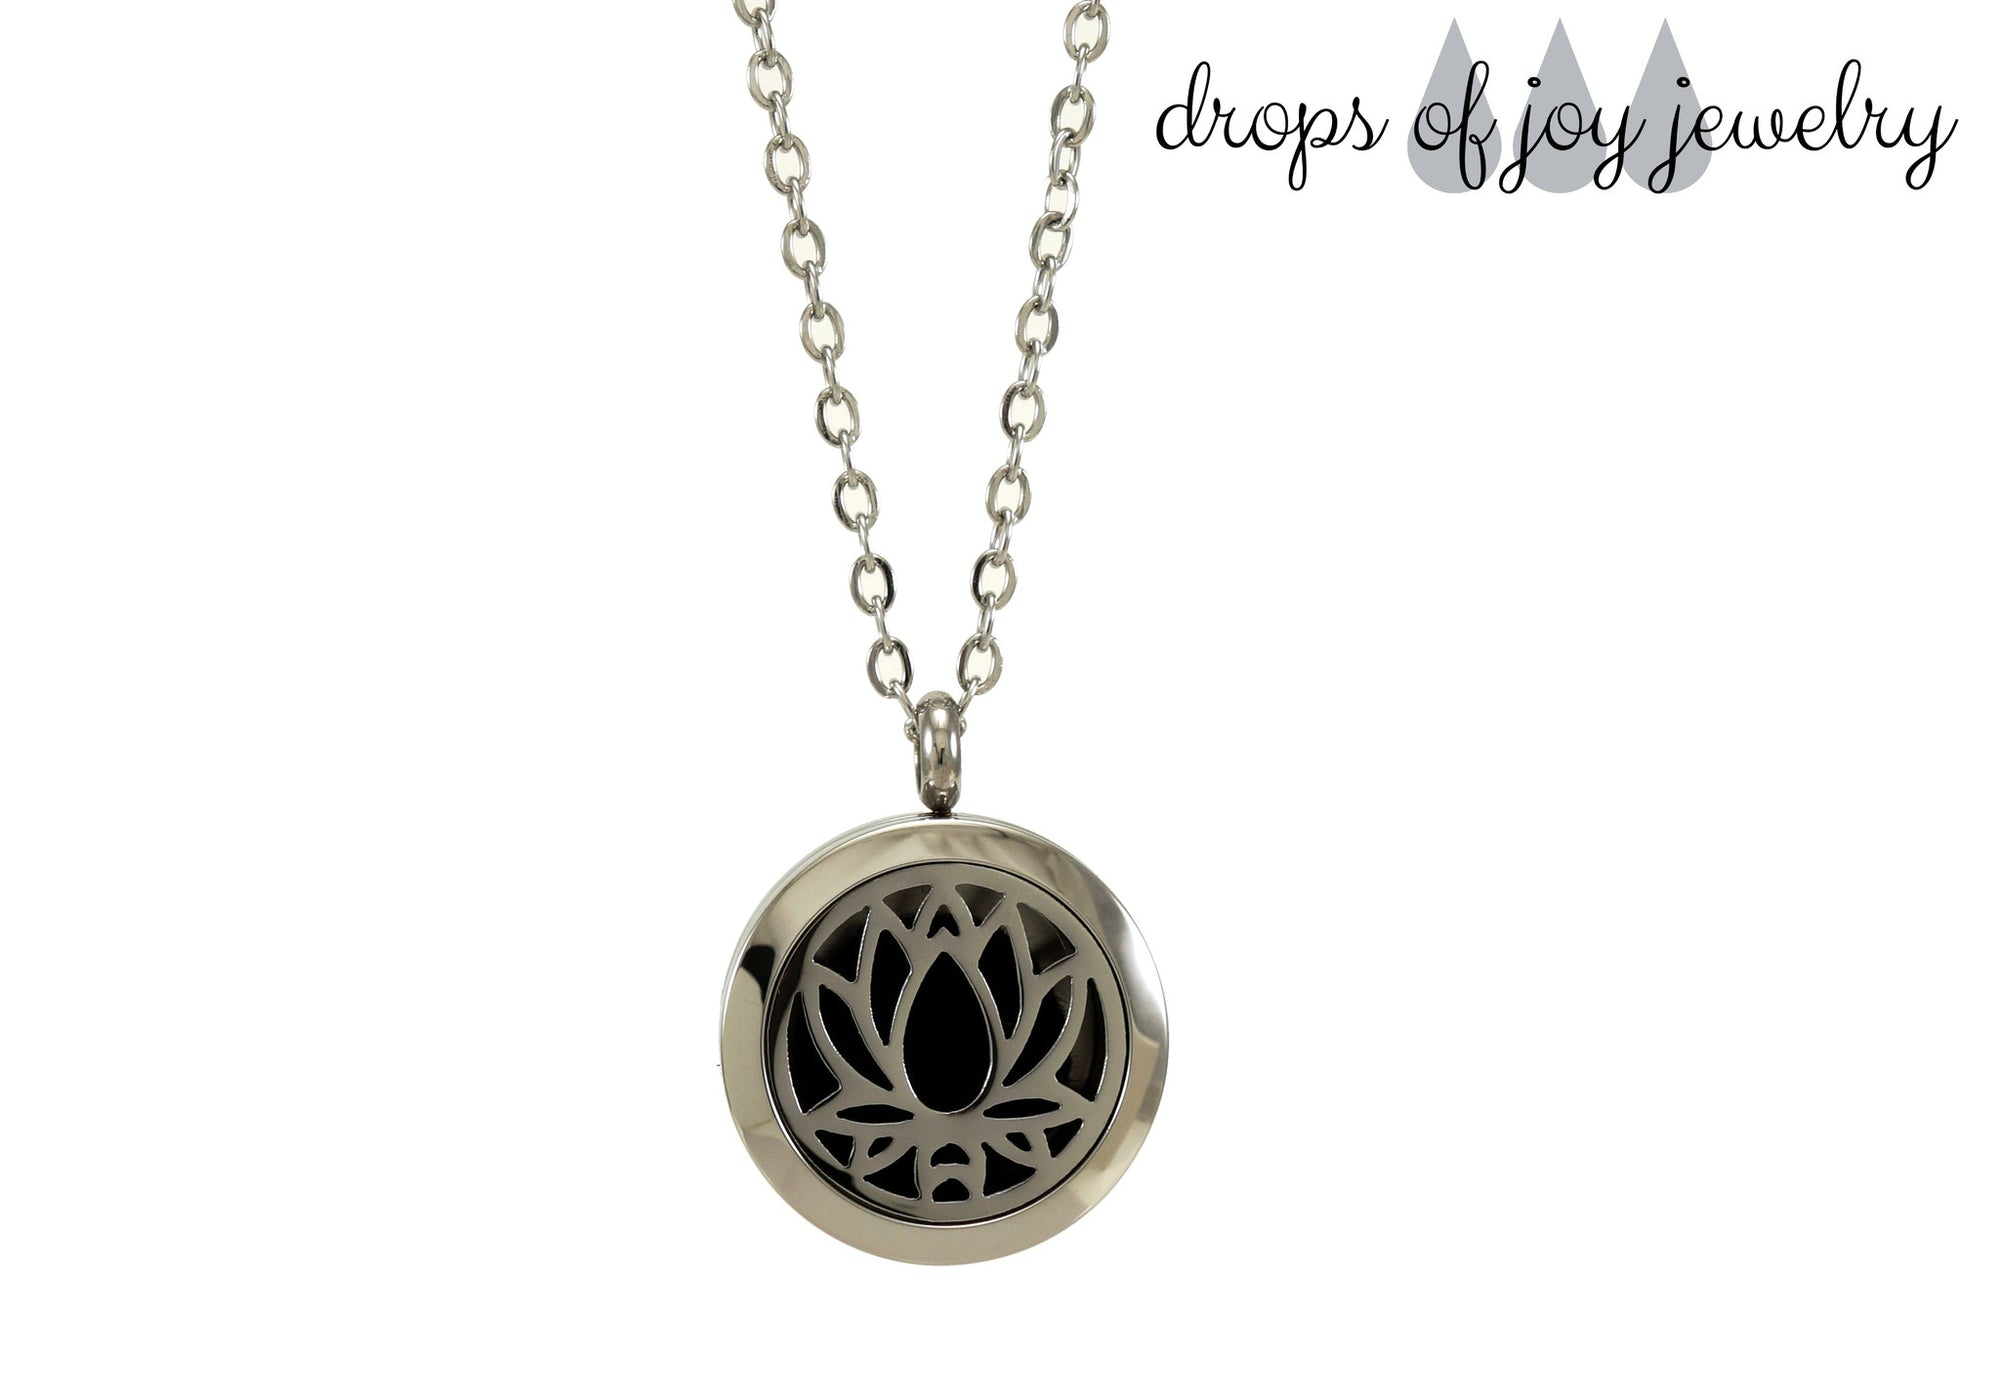 Diffuser necklace lotus flower drops of joy jewelry essential oil diffuser necklace drops of joy jewelry aromatherapy jewelry izmirmasajfo